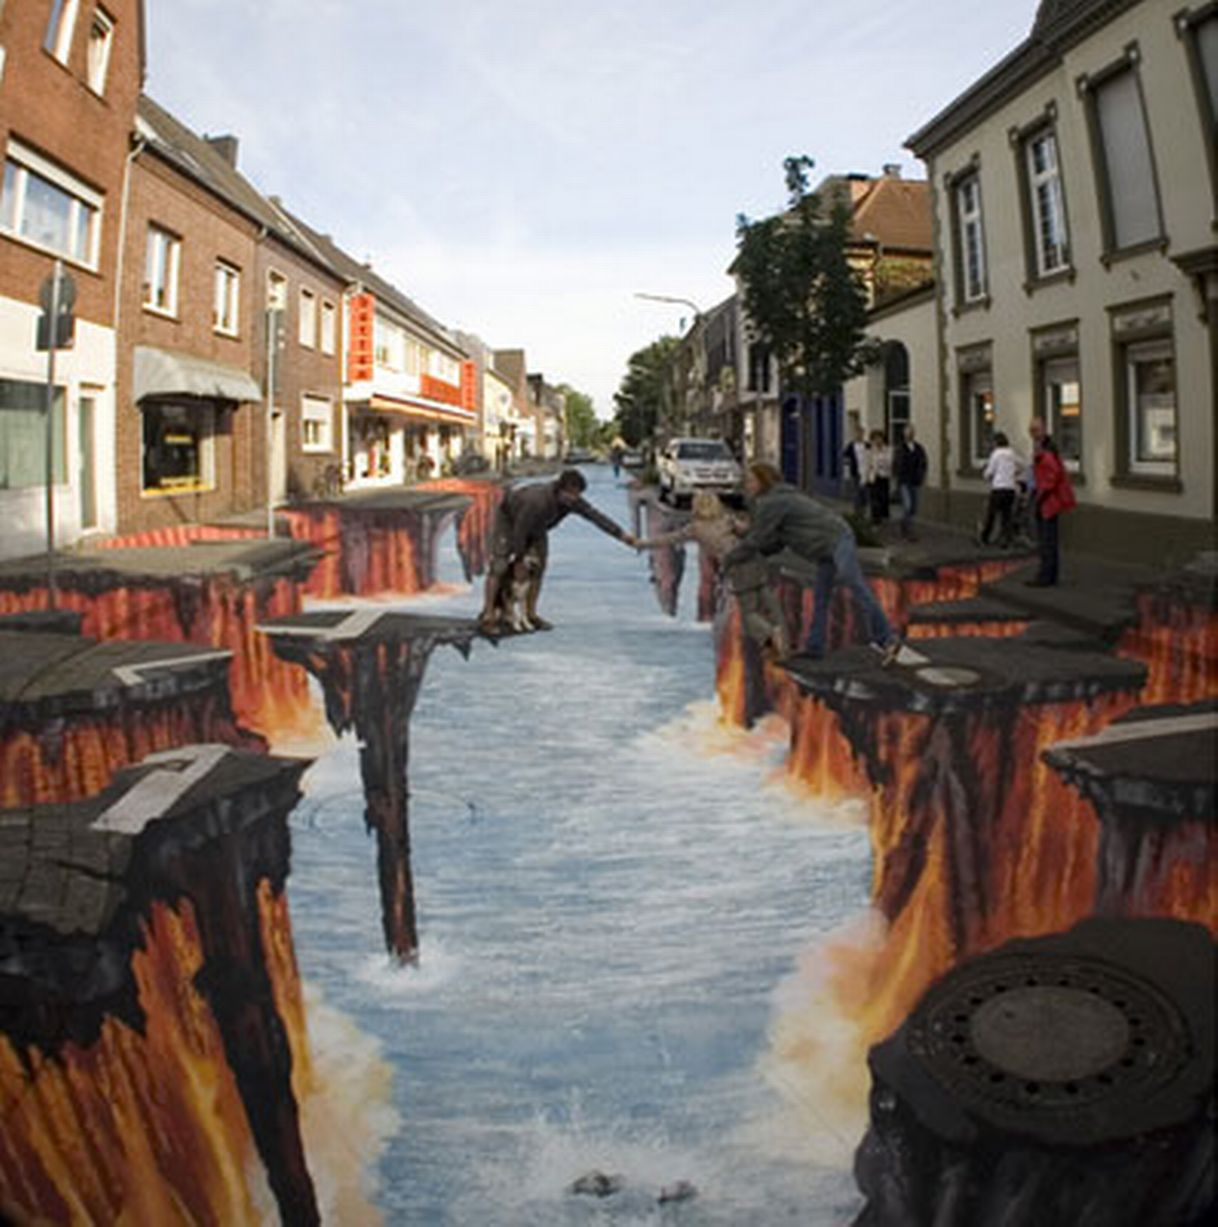 Road to hell: Artist Edgar Mueller transformed an ordinary street in his native Germany into an apocalyptic scene that could have come straight out of a Hollywood movie. Mueller created the 3D art work for a street painting contest.